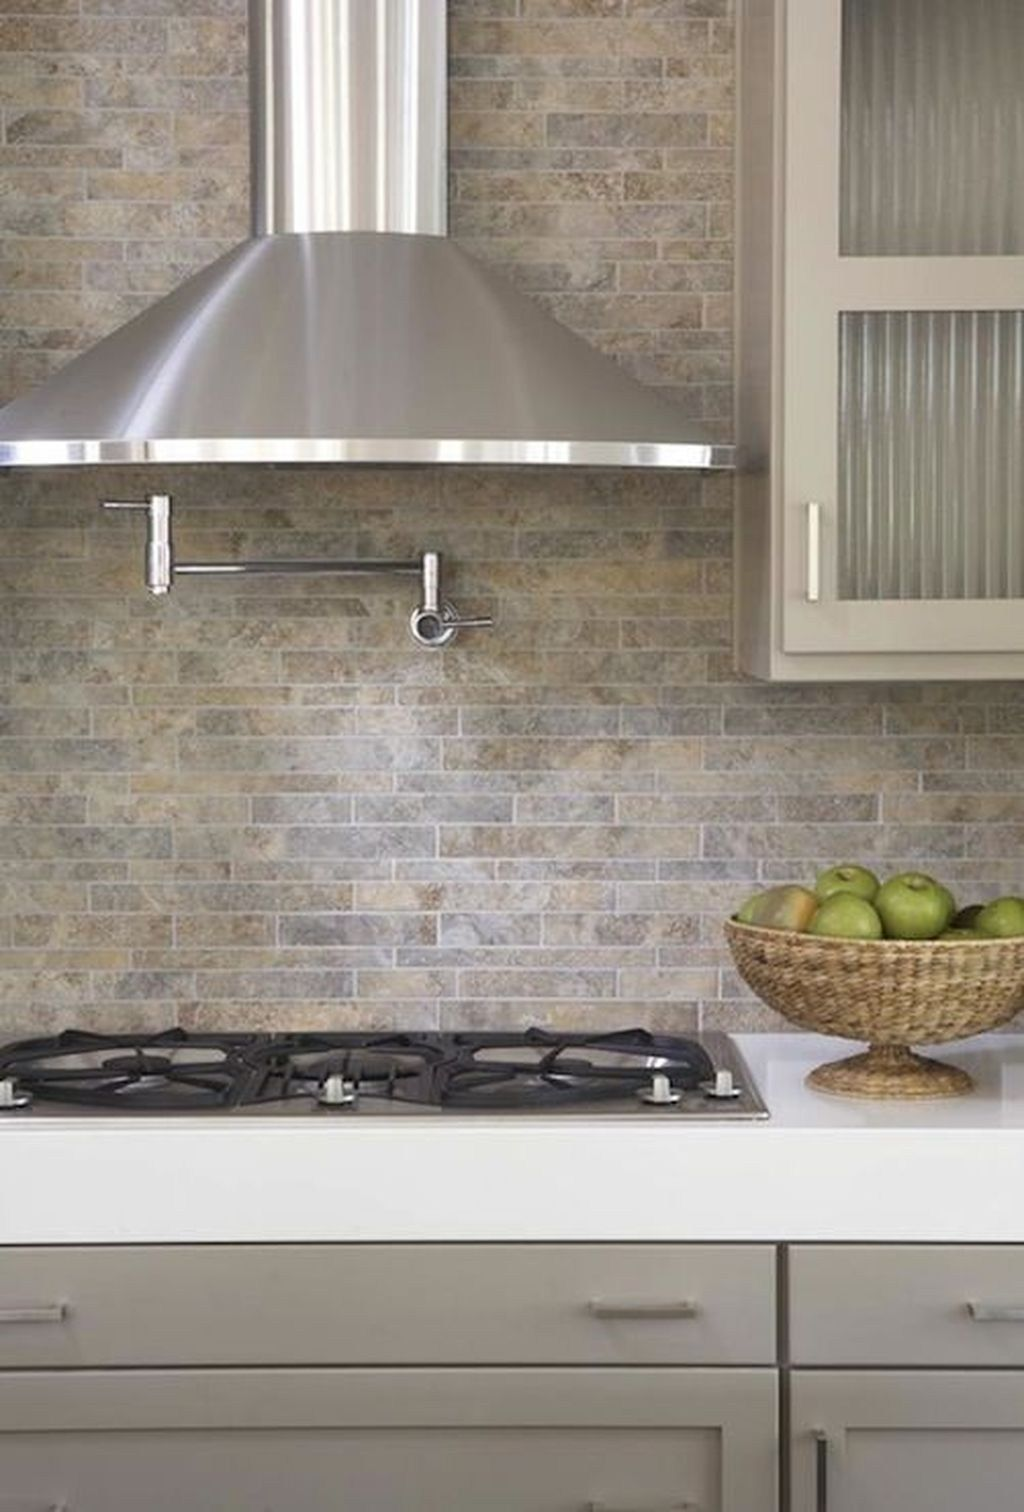 39 beautiful farmhouse kitchen backsplash ideas home ideas grey kitchen cabinets taupe on farmhouse kitchen backsplash id=24385